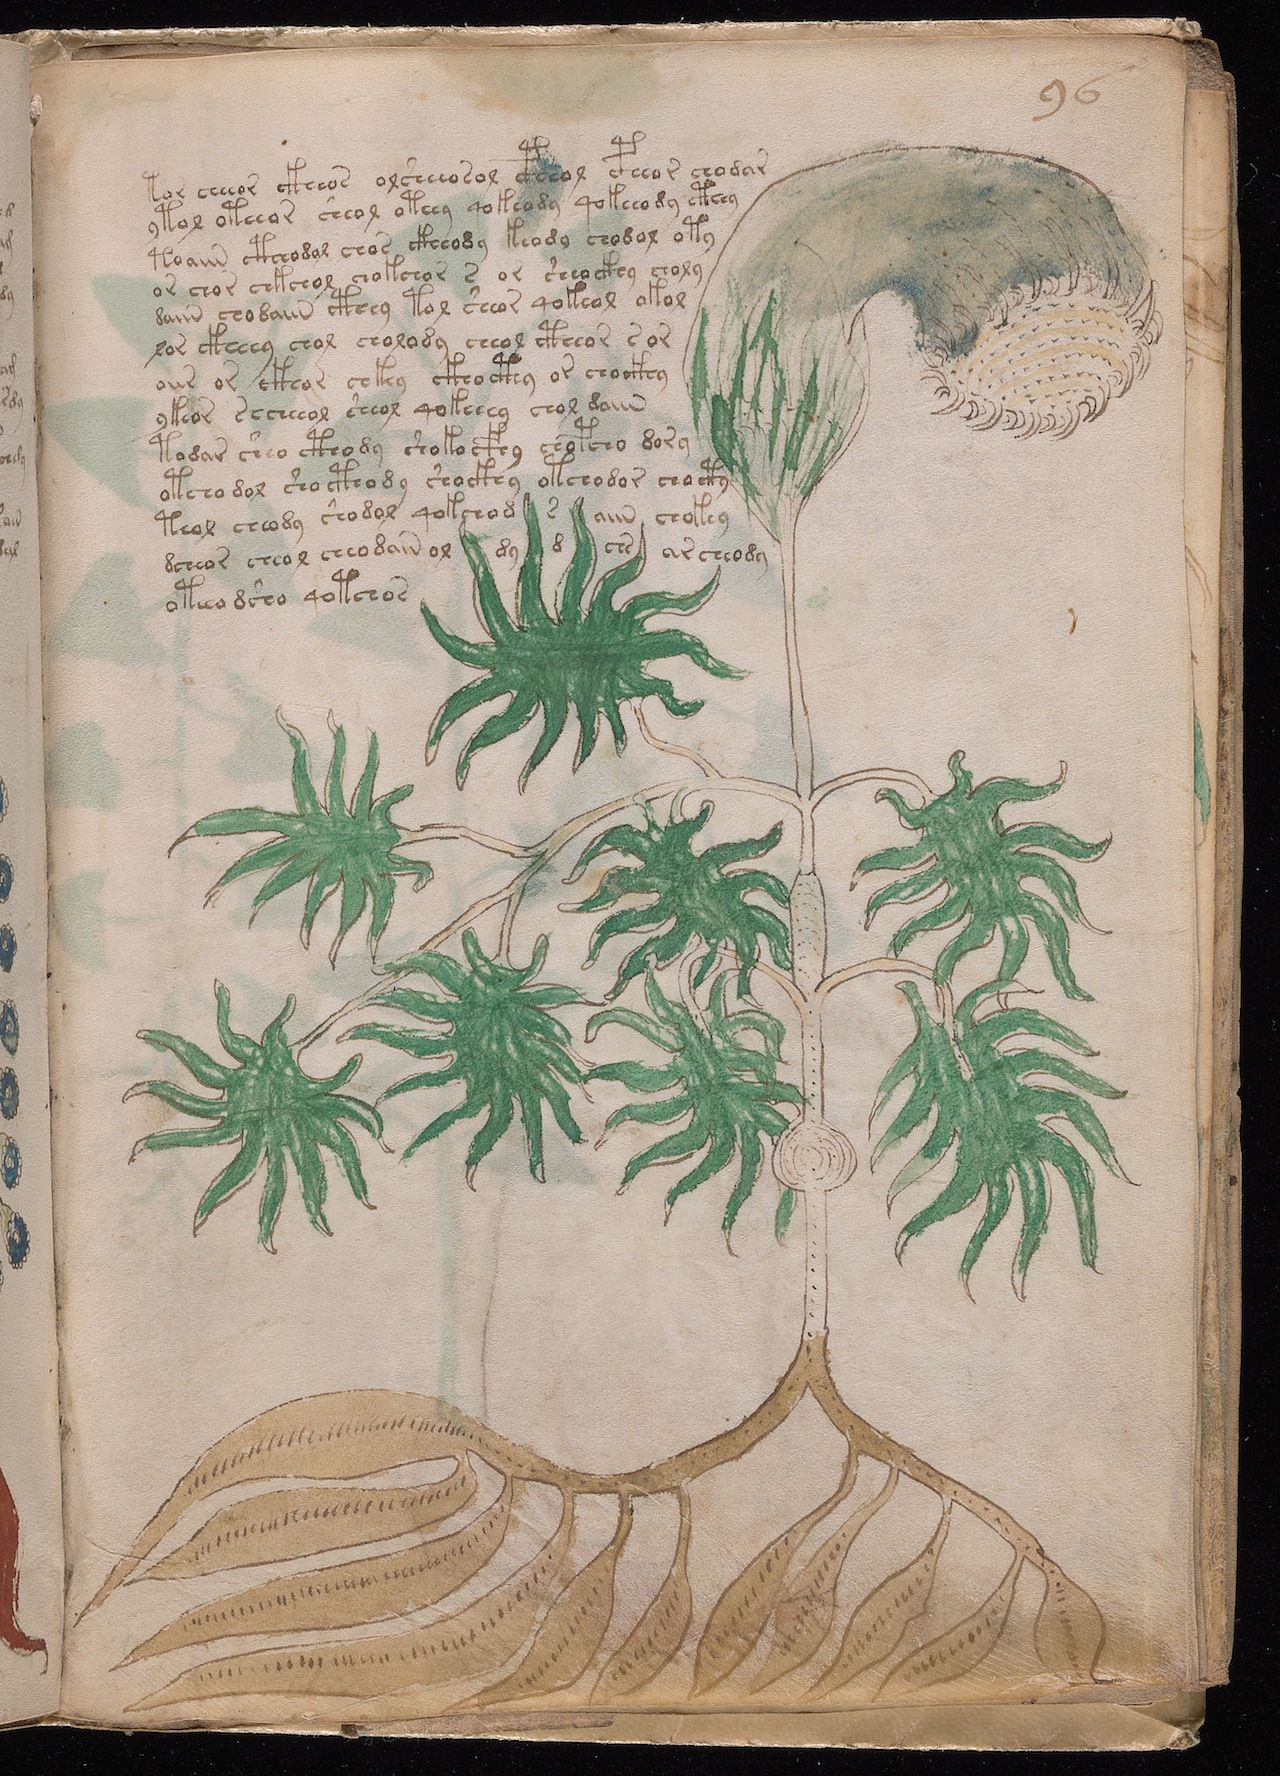 voynich datingfull hookup campgrounds near mount rushmore